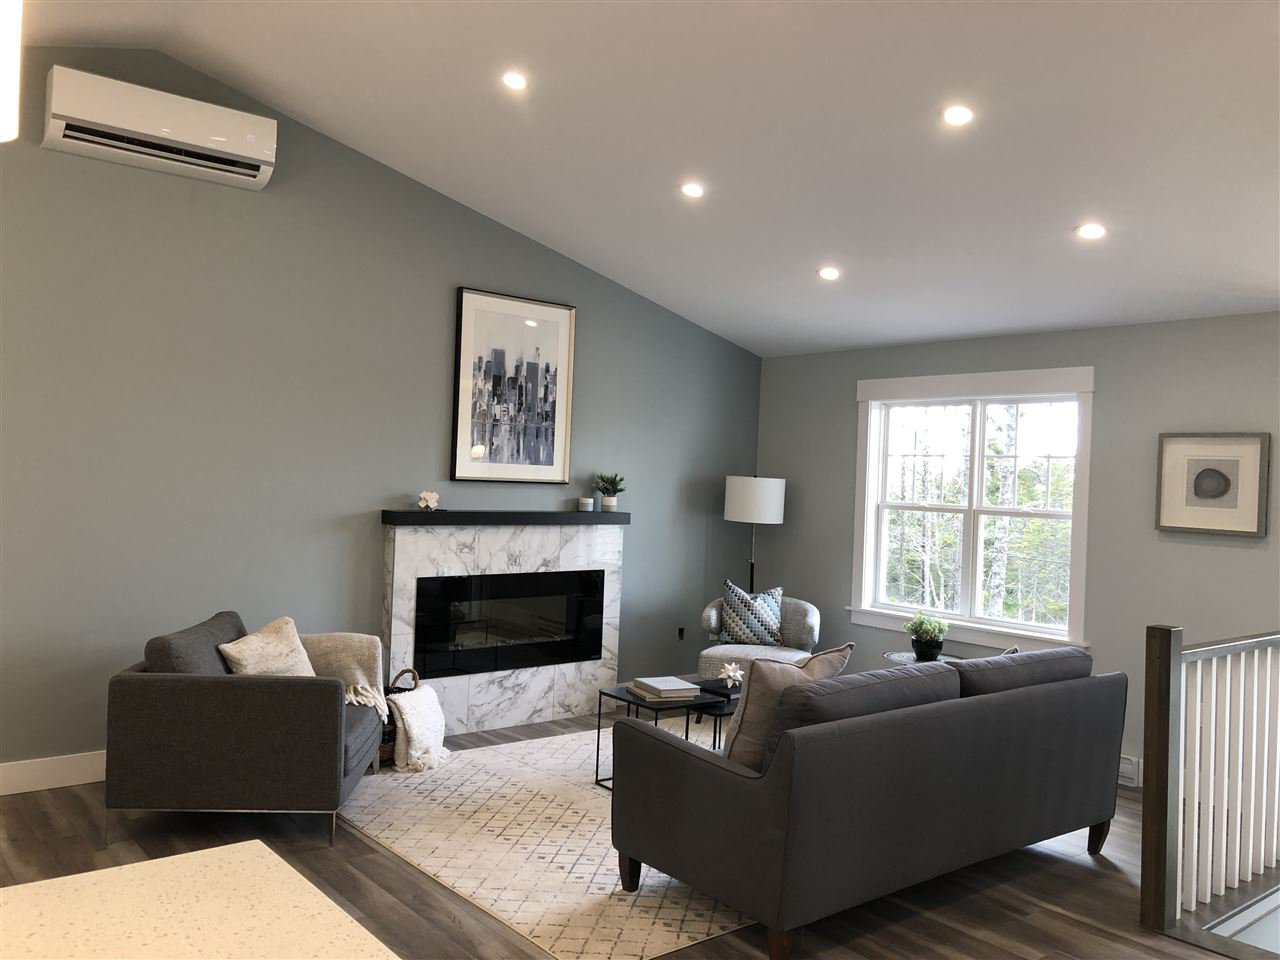 Photo 5: Photos: Lot 678 - 215 Confederation Avenue in Fall River: 30-Waverley, Fall River, Oakfield Residential for sale (Halifax-Dartmouth)  : MLS®# 201913206